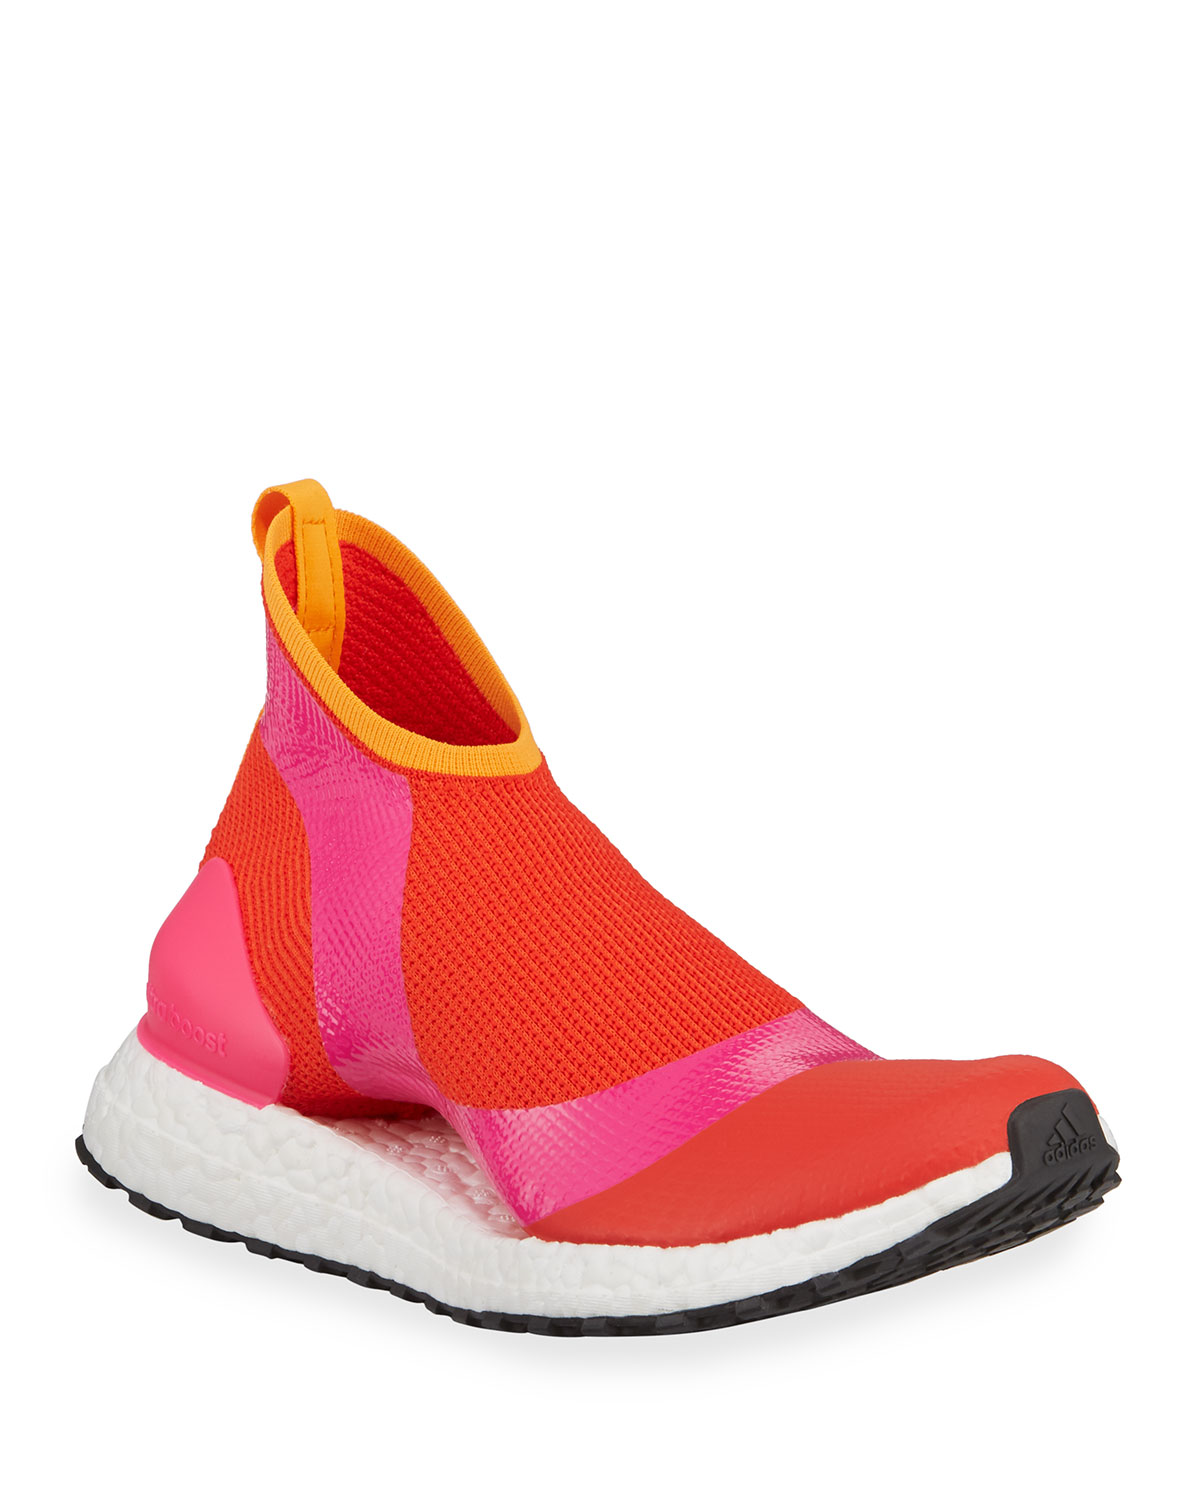 new concept 84028 c94e2 adidas by Stella McCartney Ultra Boost X Fabric Sneakers, Pink Orange